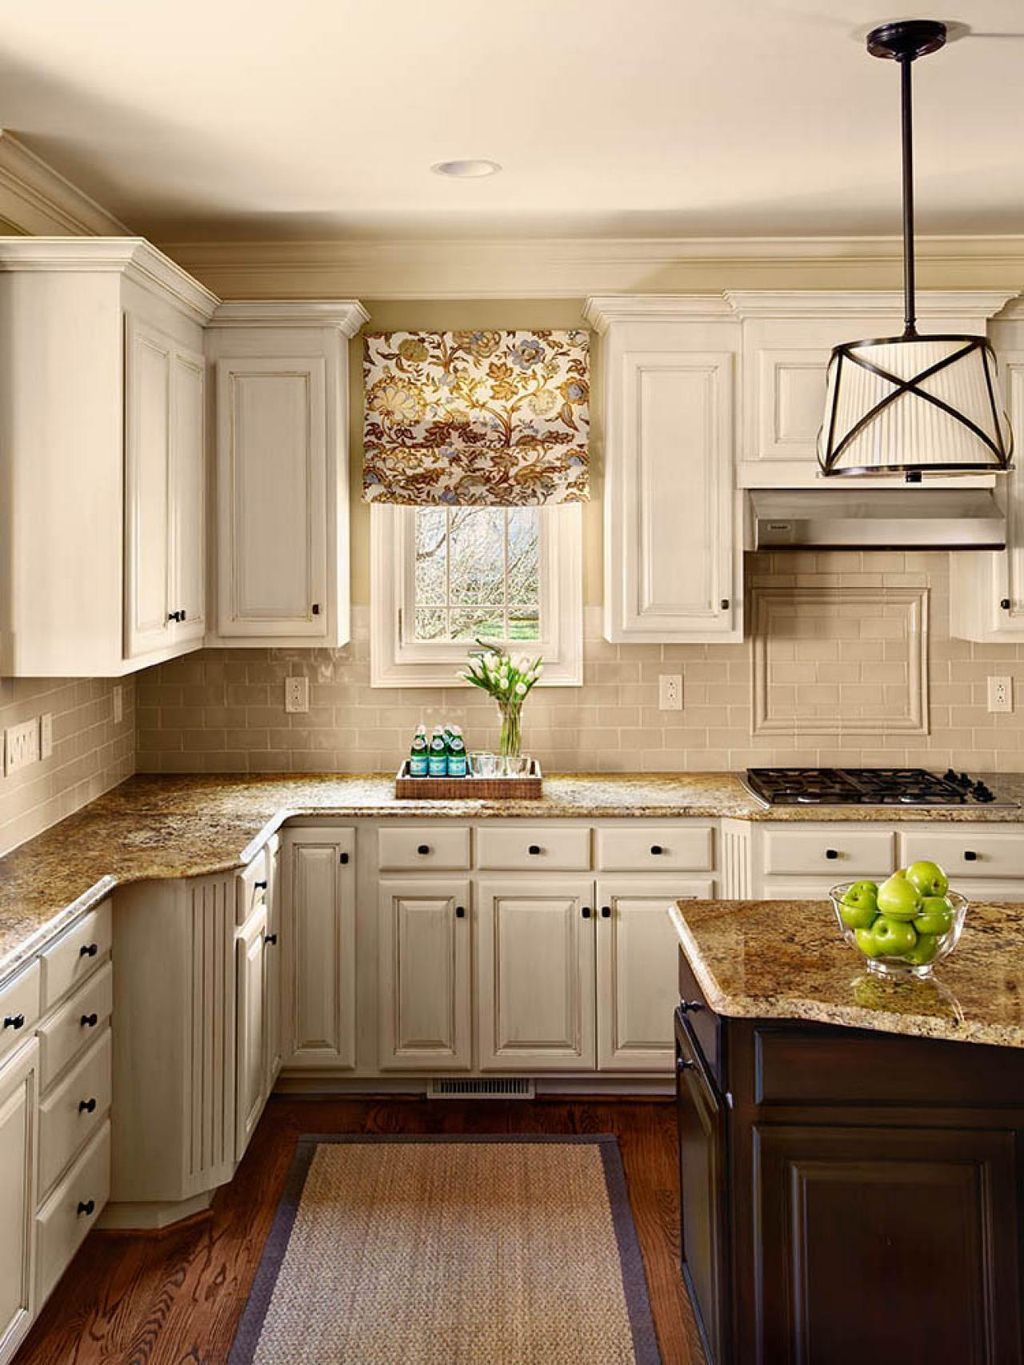 Captivating 50 Inspiring Cream Colored Kitchen Cabinets Decor Ideas (28) Design Ideas